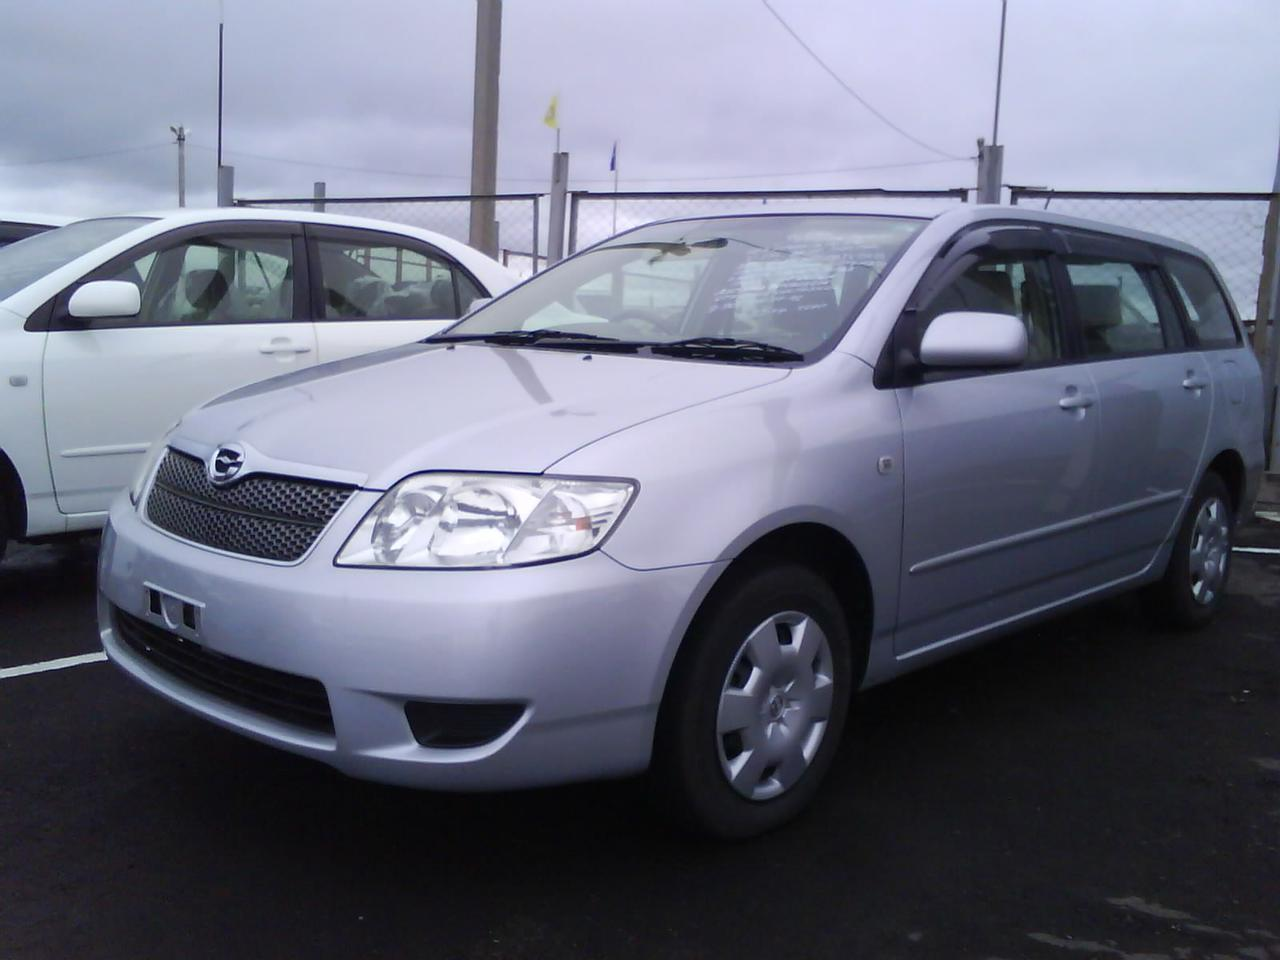 2006 Toyota Corolla For Sale >> 2006 Toyota Corolla Fielder Photos, 1.5, Gasoline, FF, Automatic For Sale